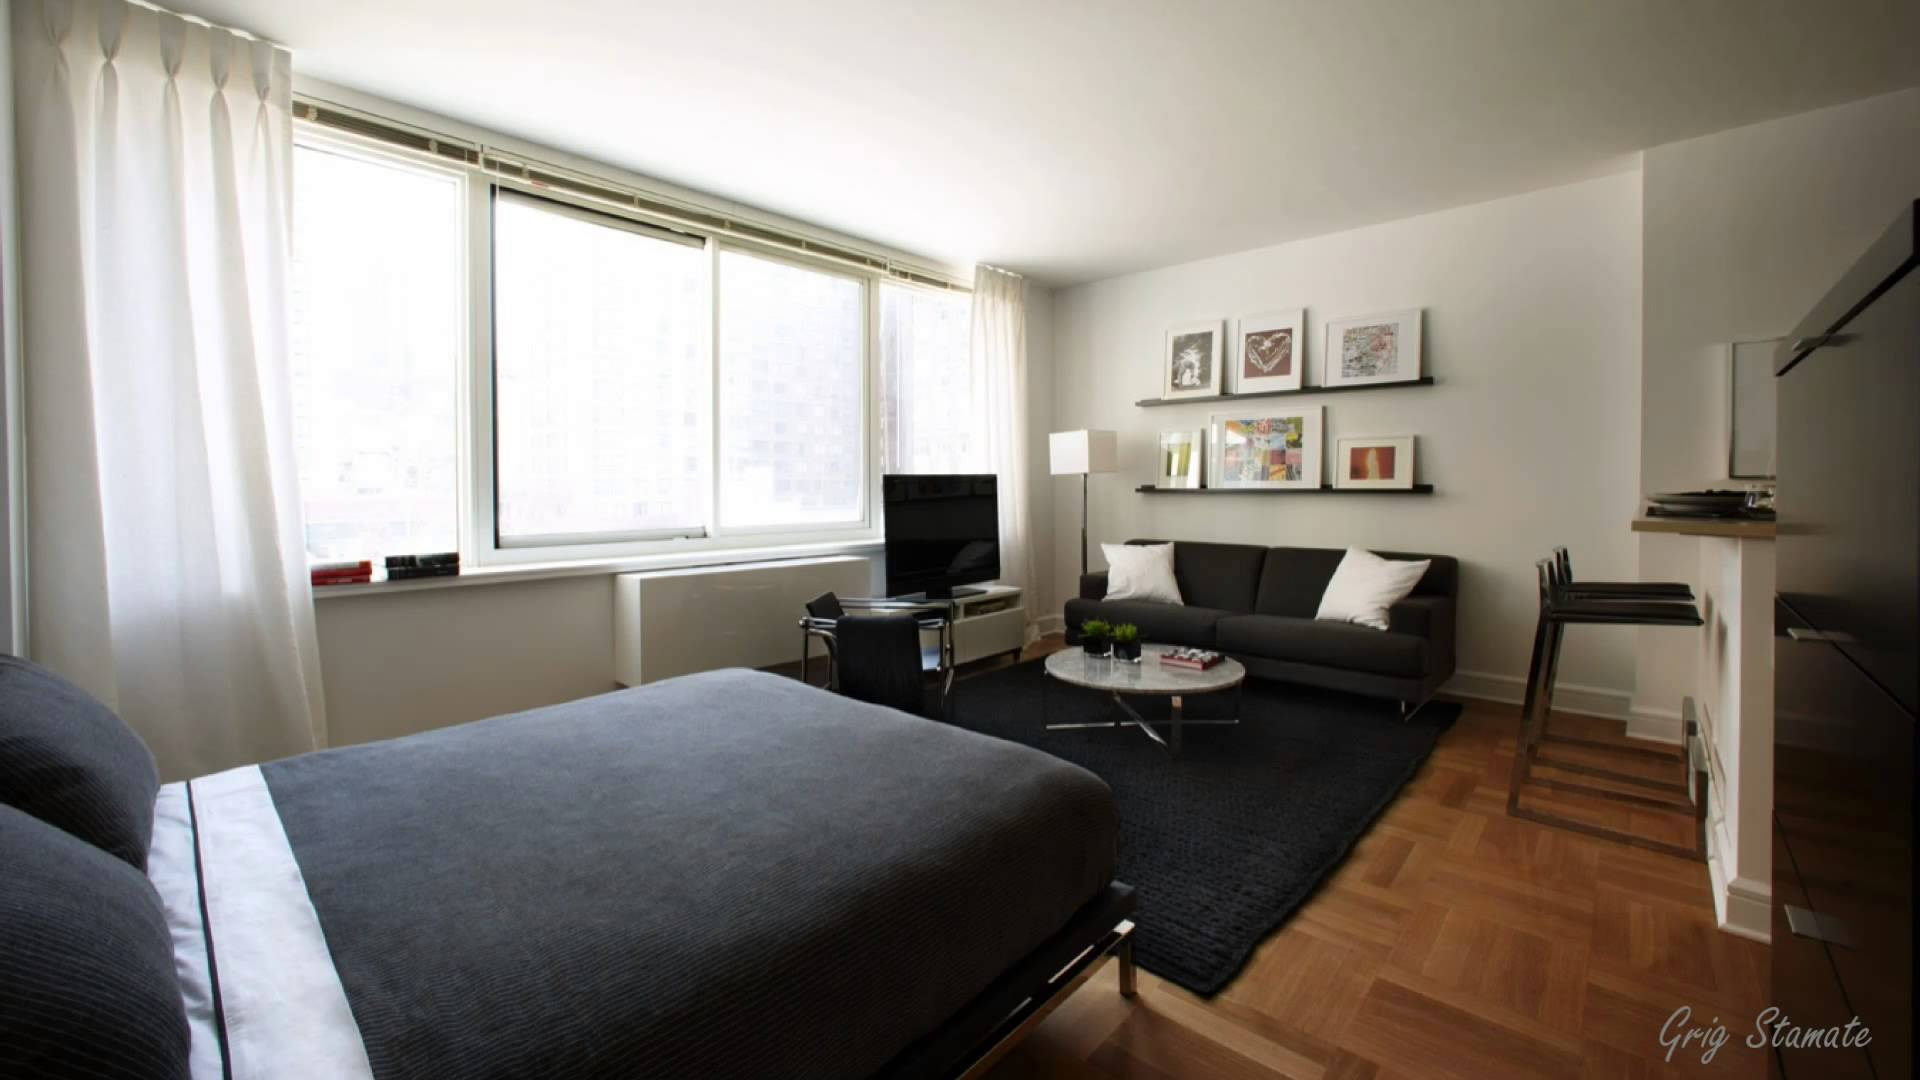 Superbe Marvelous Studio Apartment Layout With Bed Also TV And Sofa